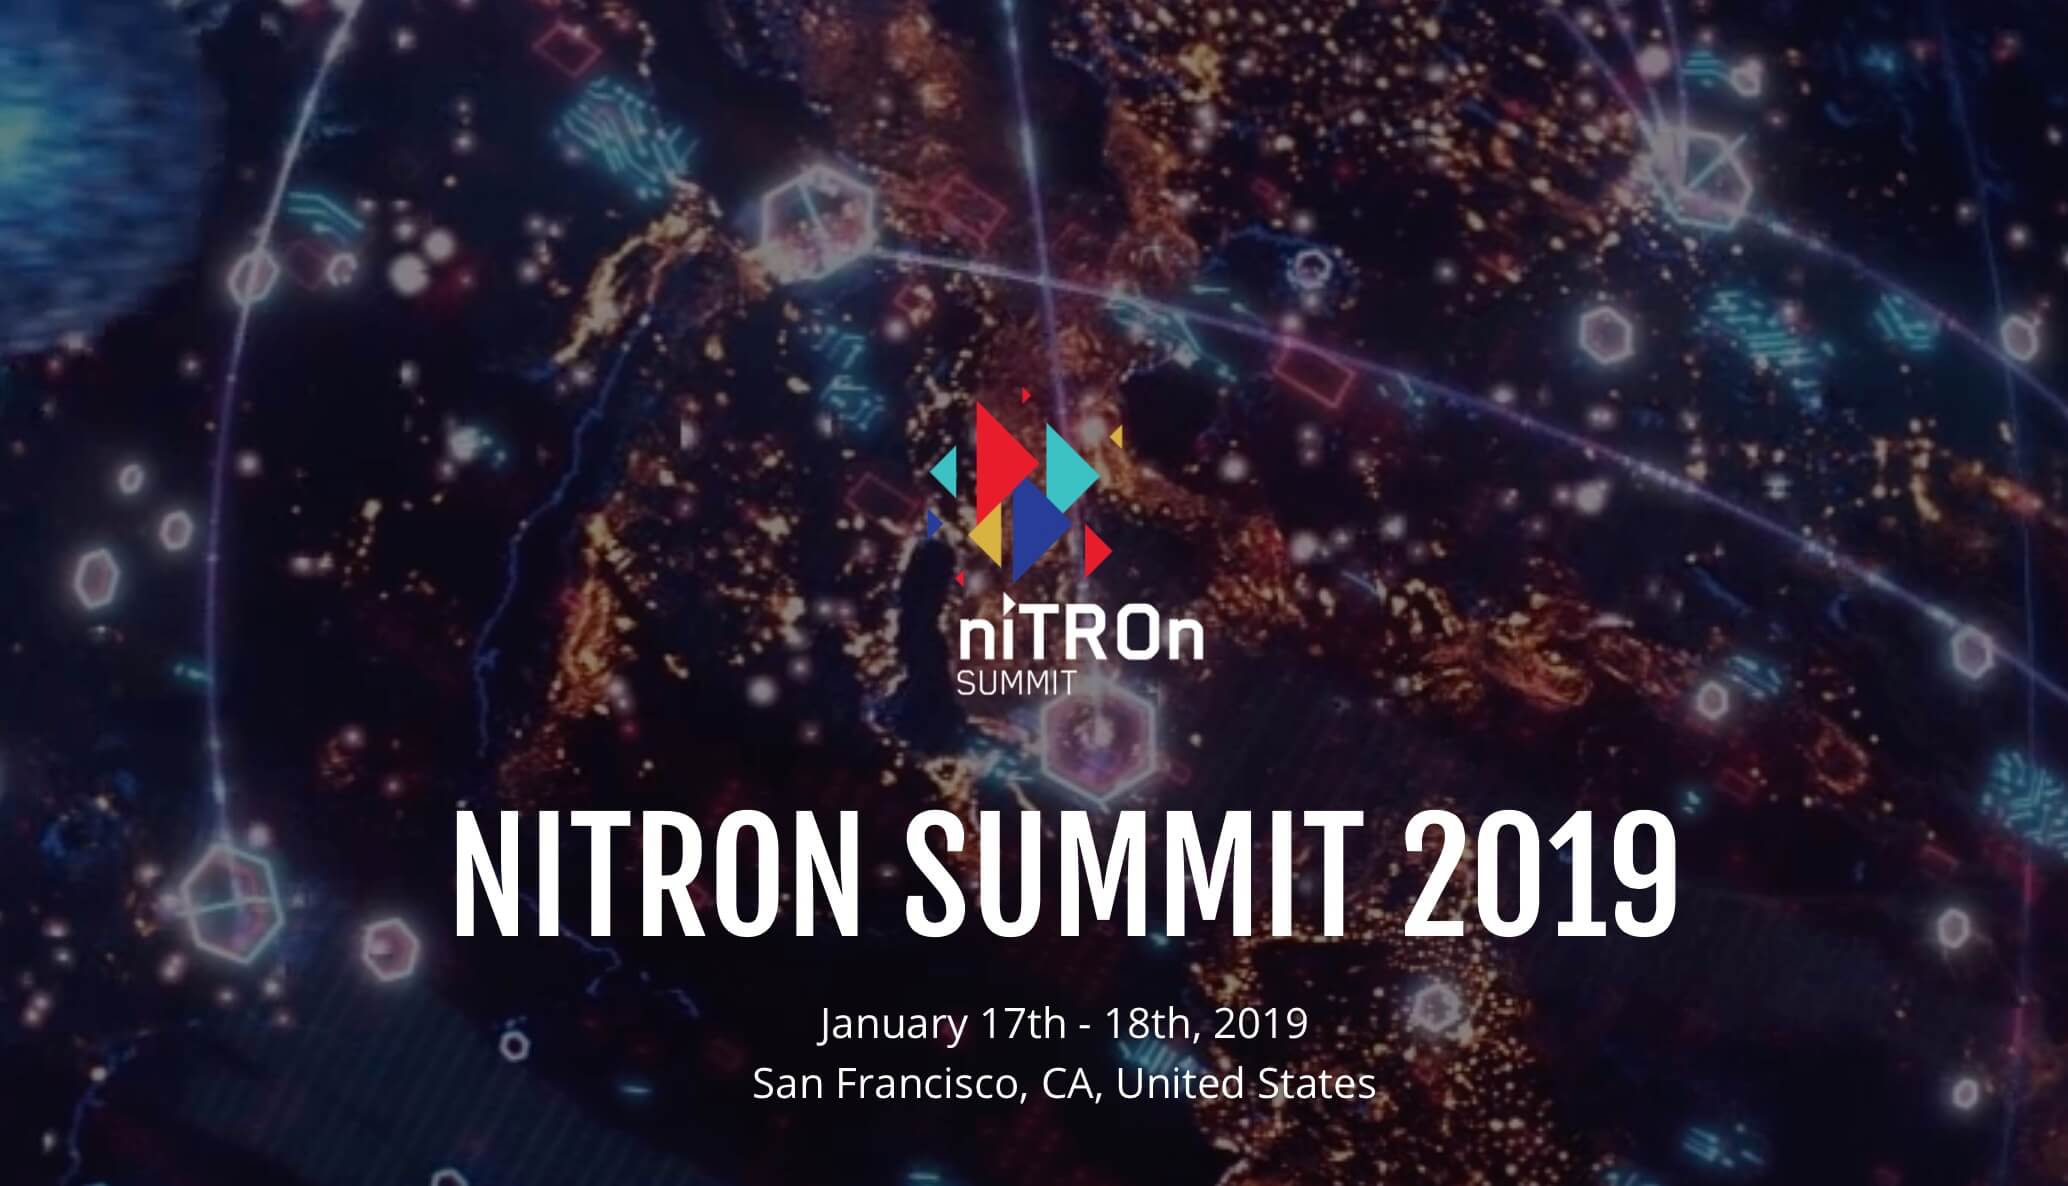 nitron-summit-2019